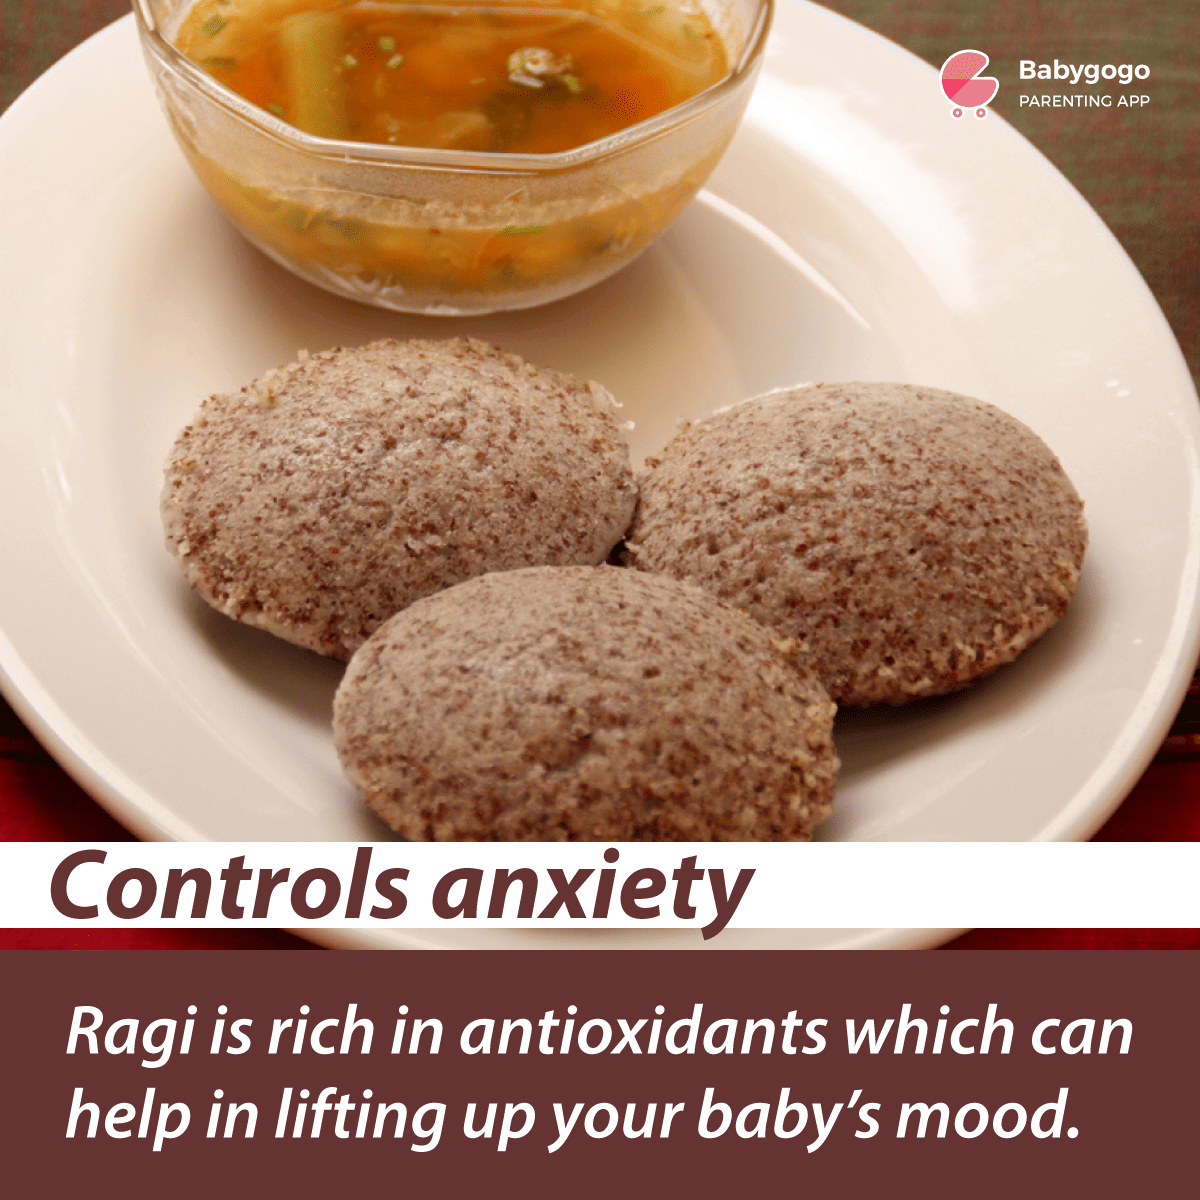 Ragi controls anxiety in babies